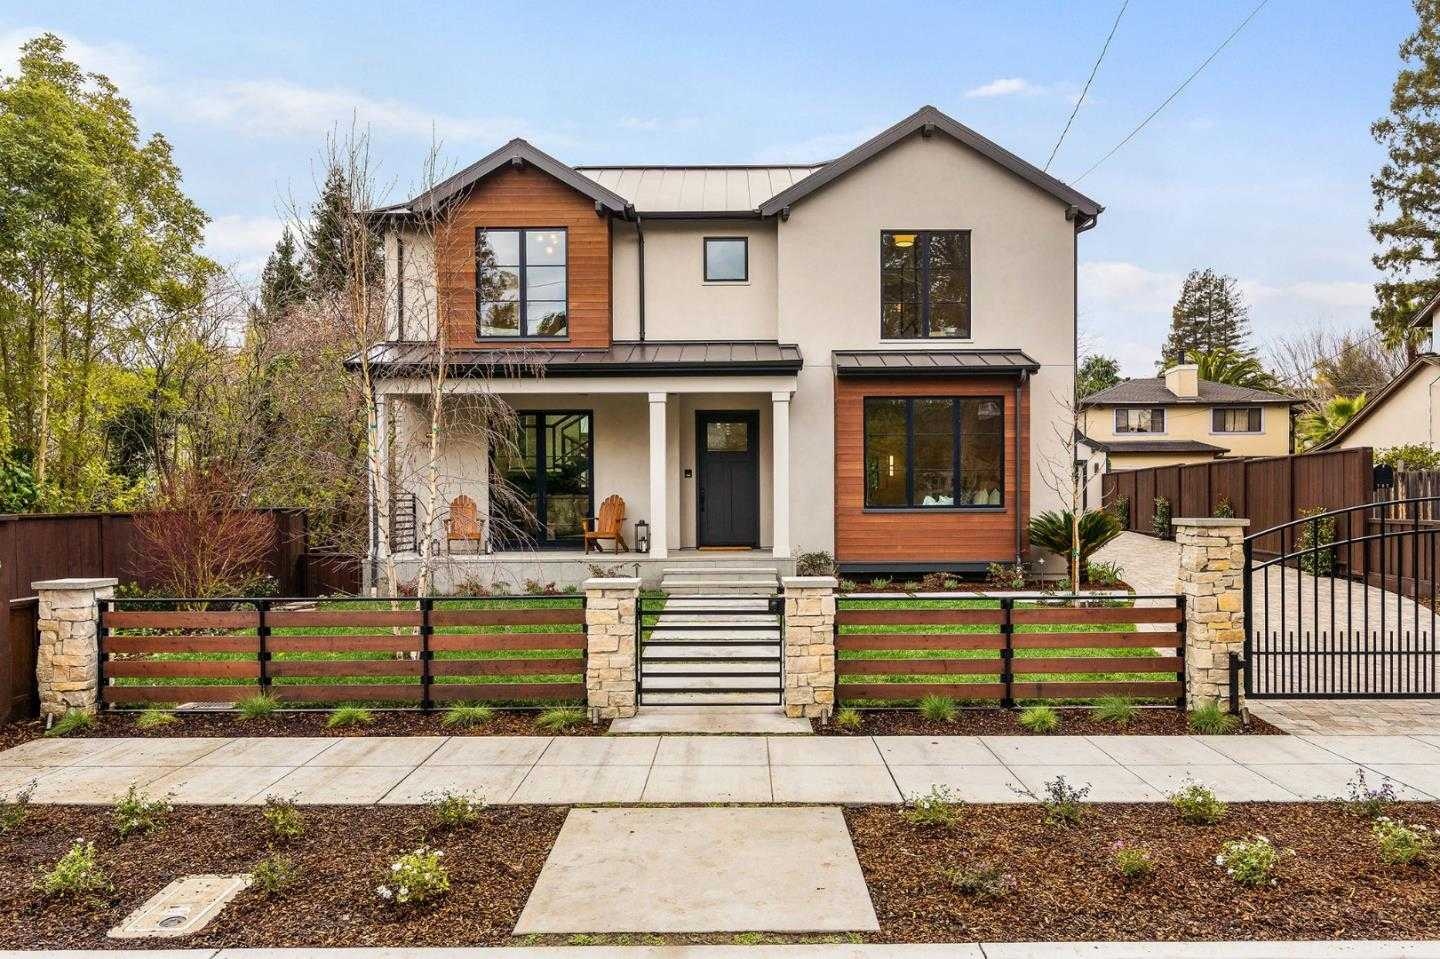 $5,495,000 - 5Br/5Ba -  for Sale in Burlingame